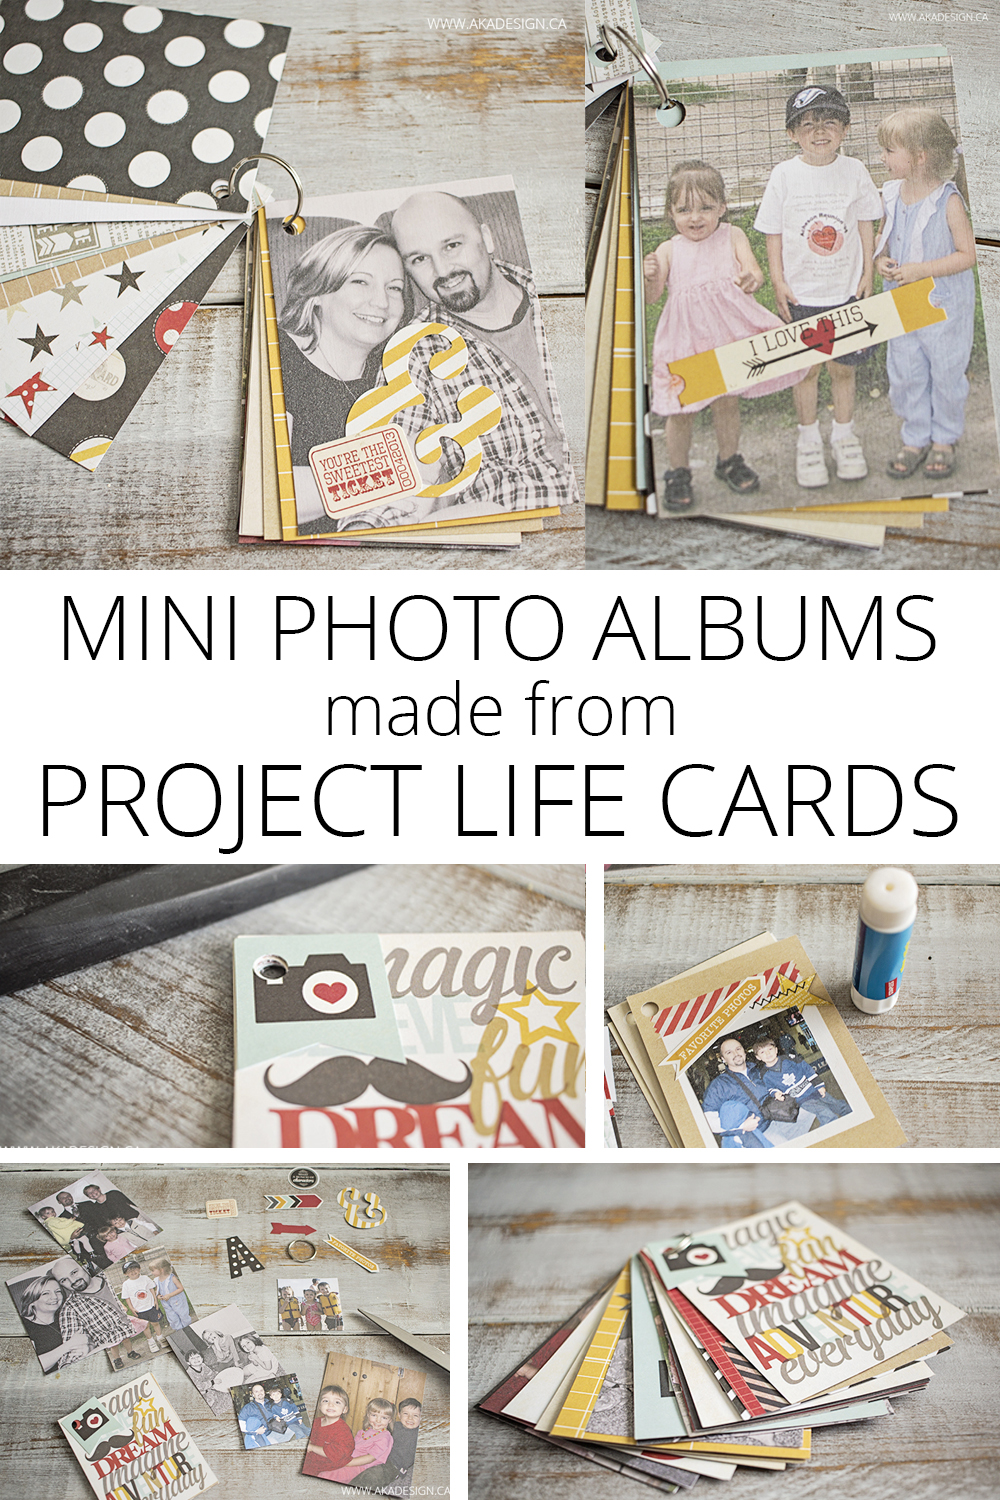 mini photo albums made from project life cards